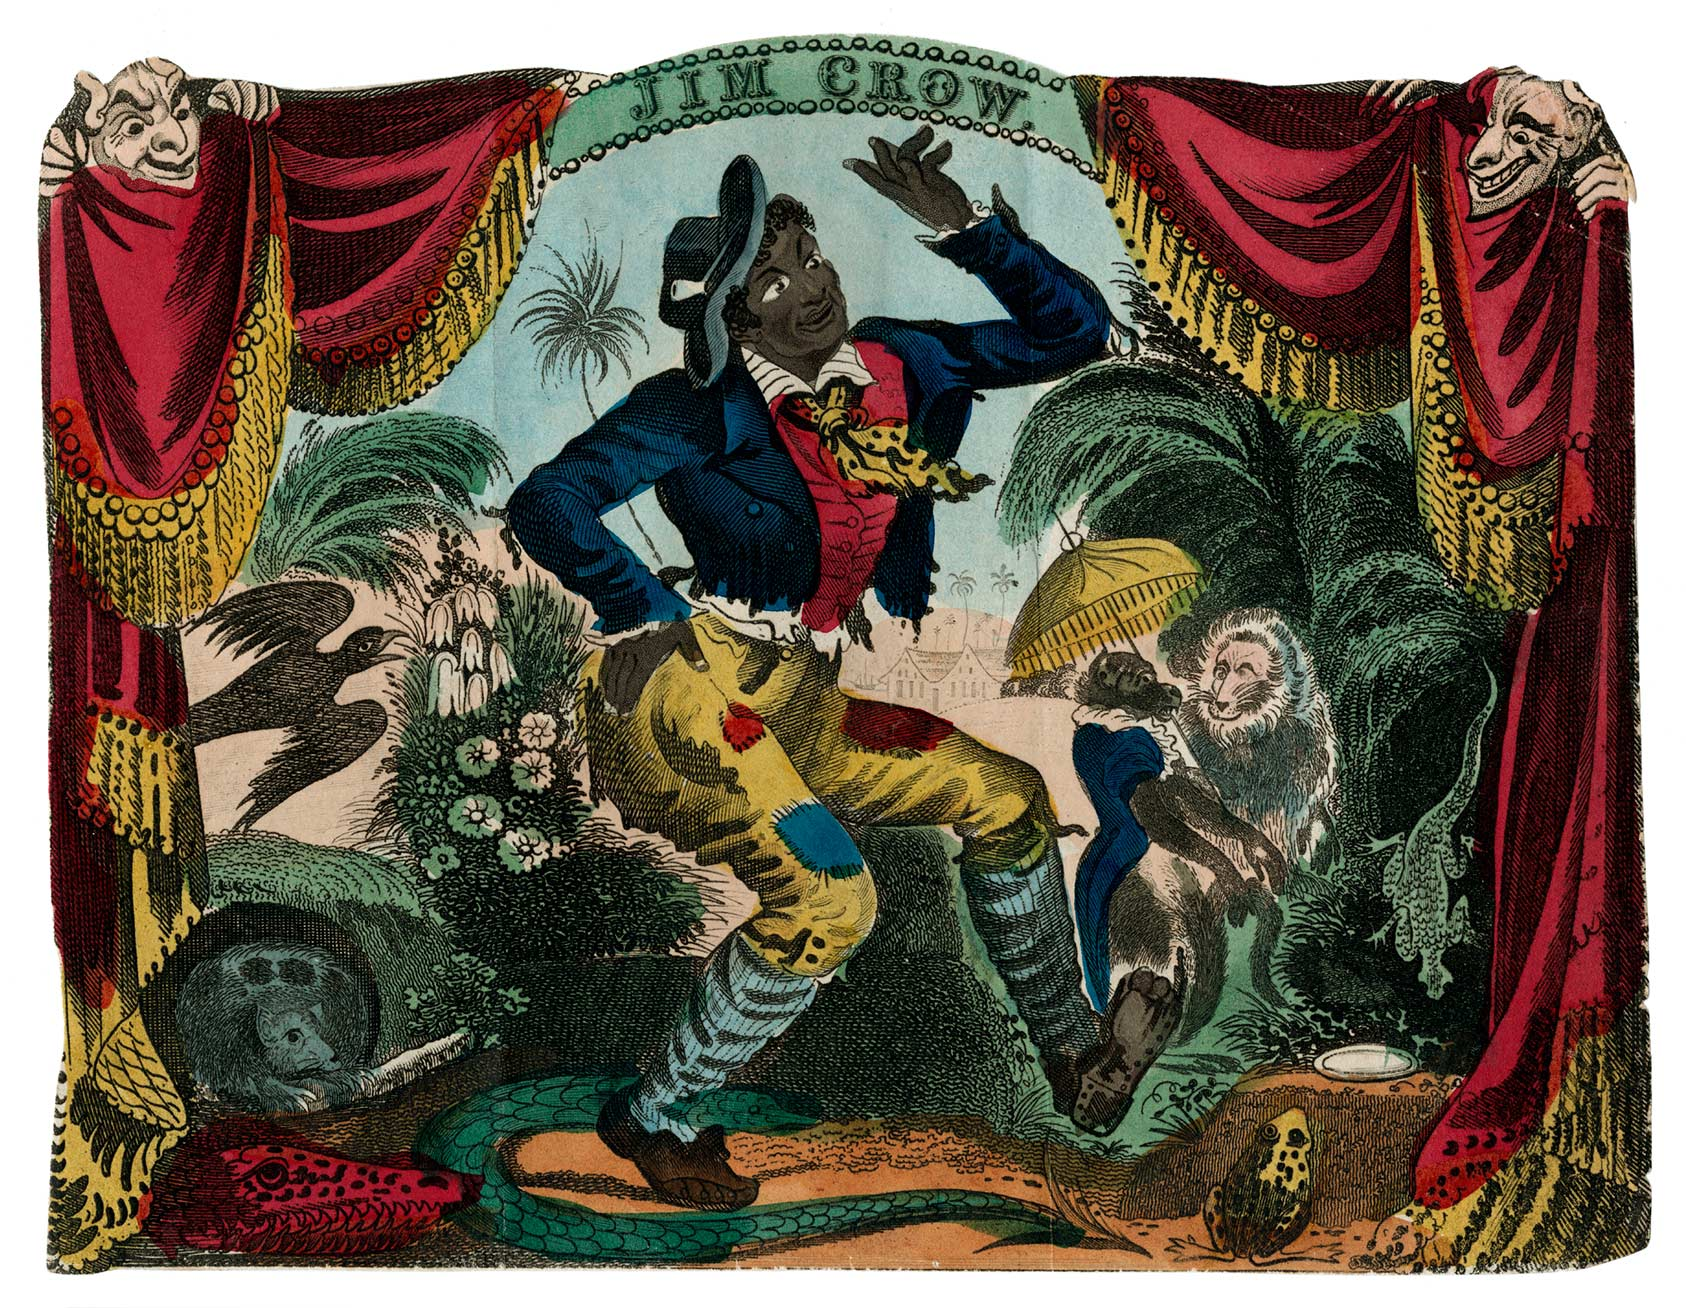 thomas-rice-as-jim-crow-at-the-bowery-theatre-new-york-1833artotype